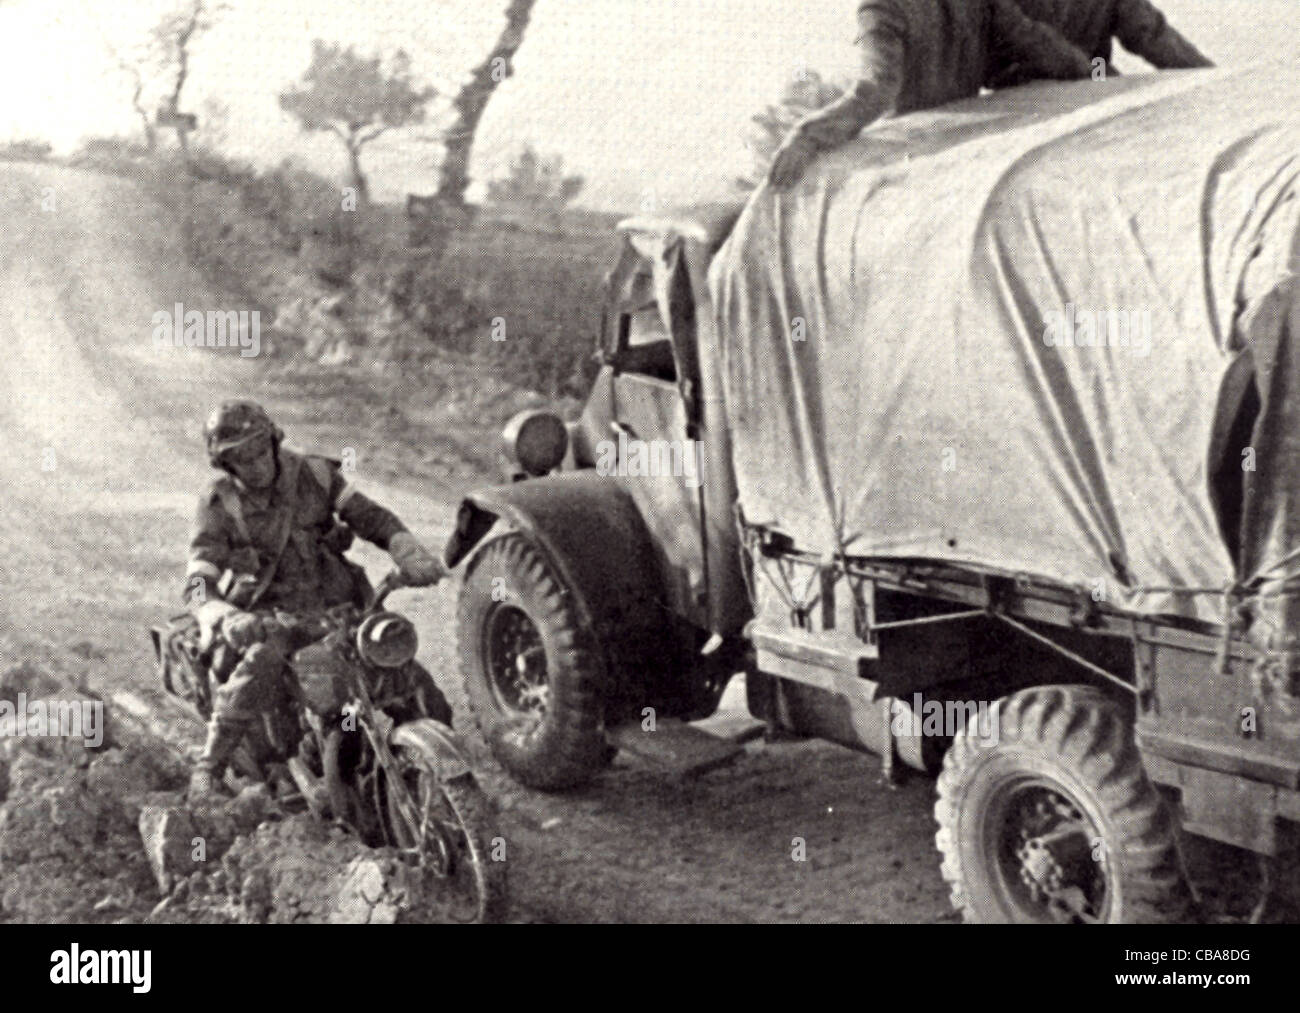 A British dispatch rider courier passes a truck on an Italian road